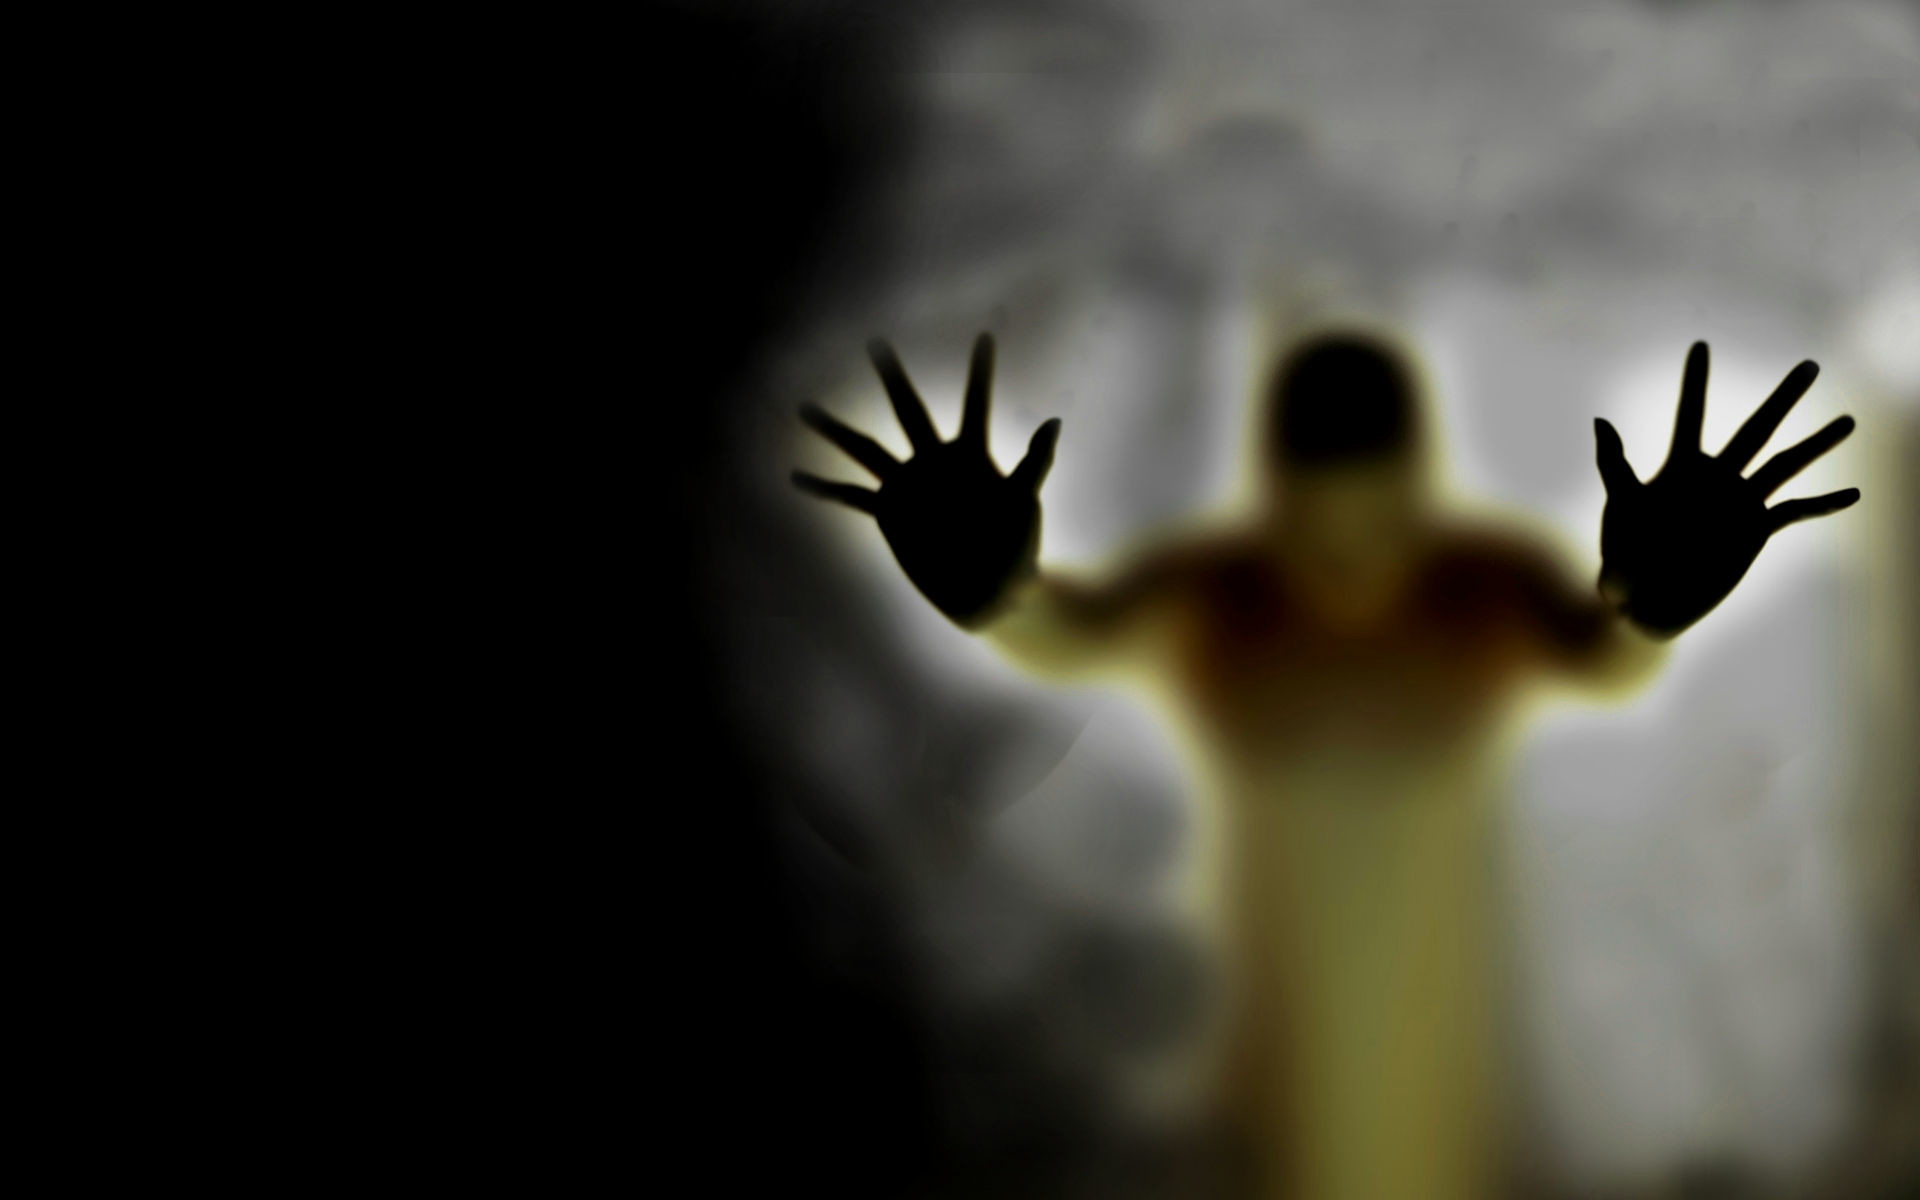 Halloween Spooky Wallpaper.Scary Halloween Wallpapers 70 Background Pictures